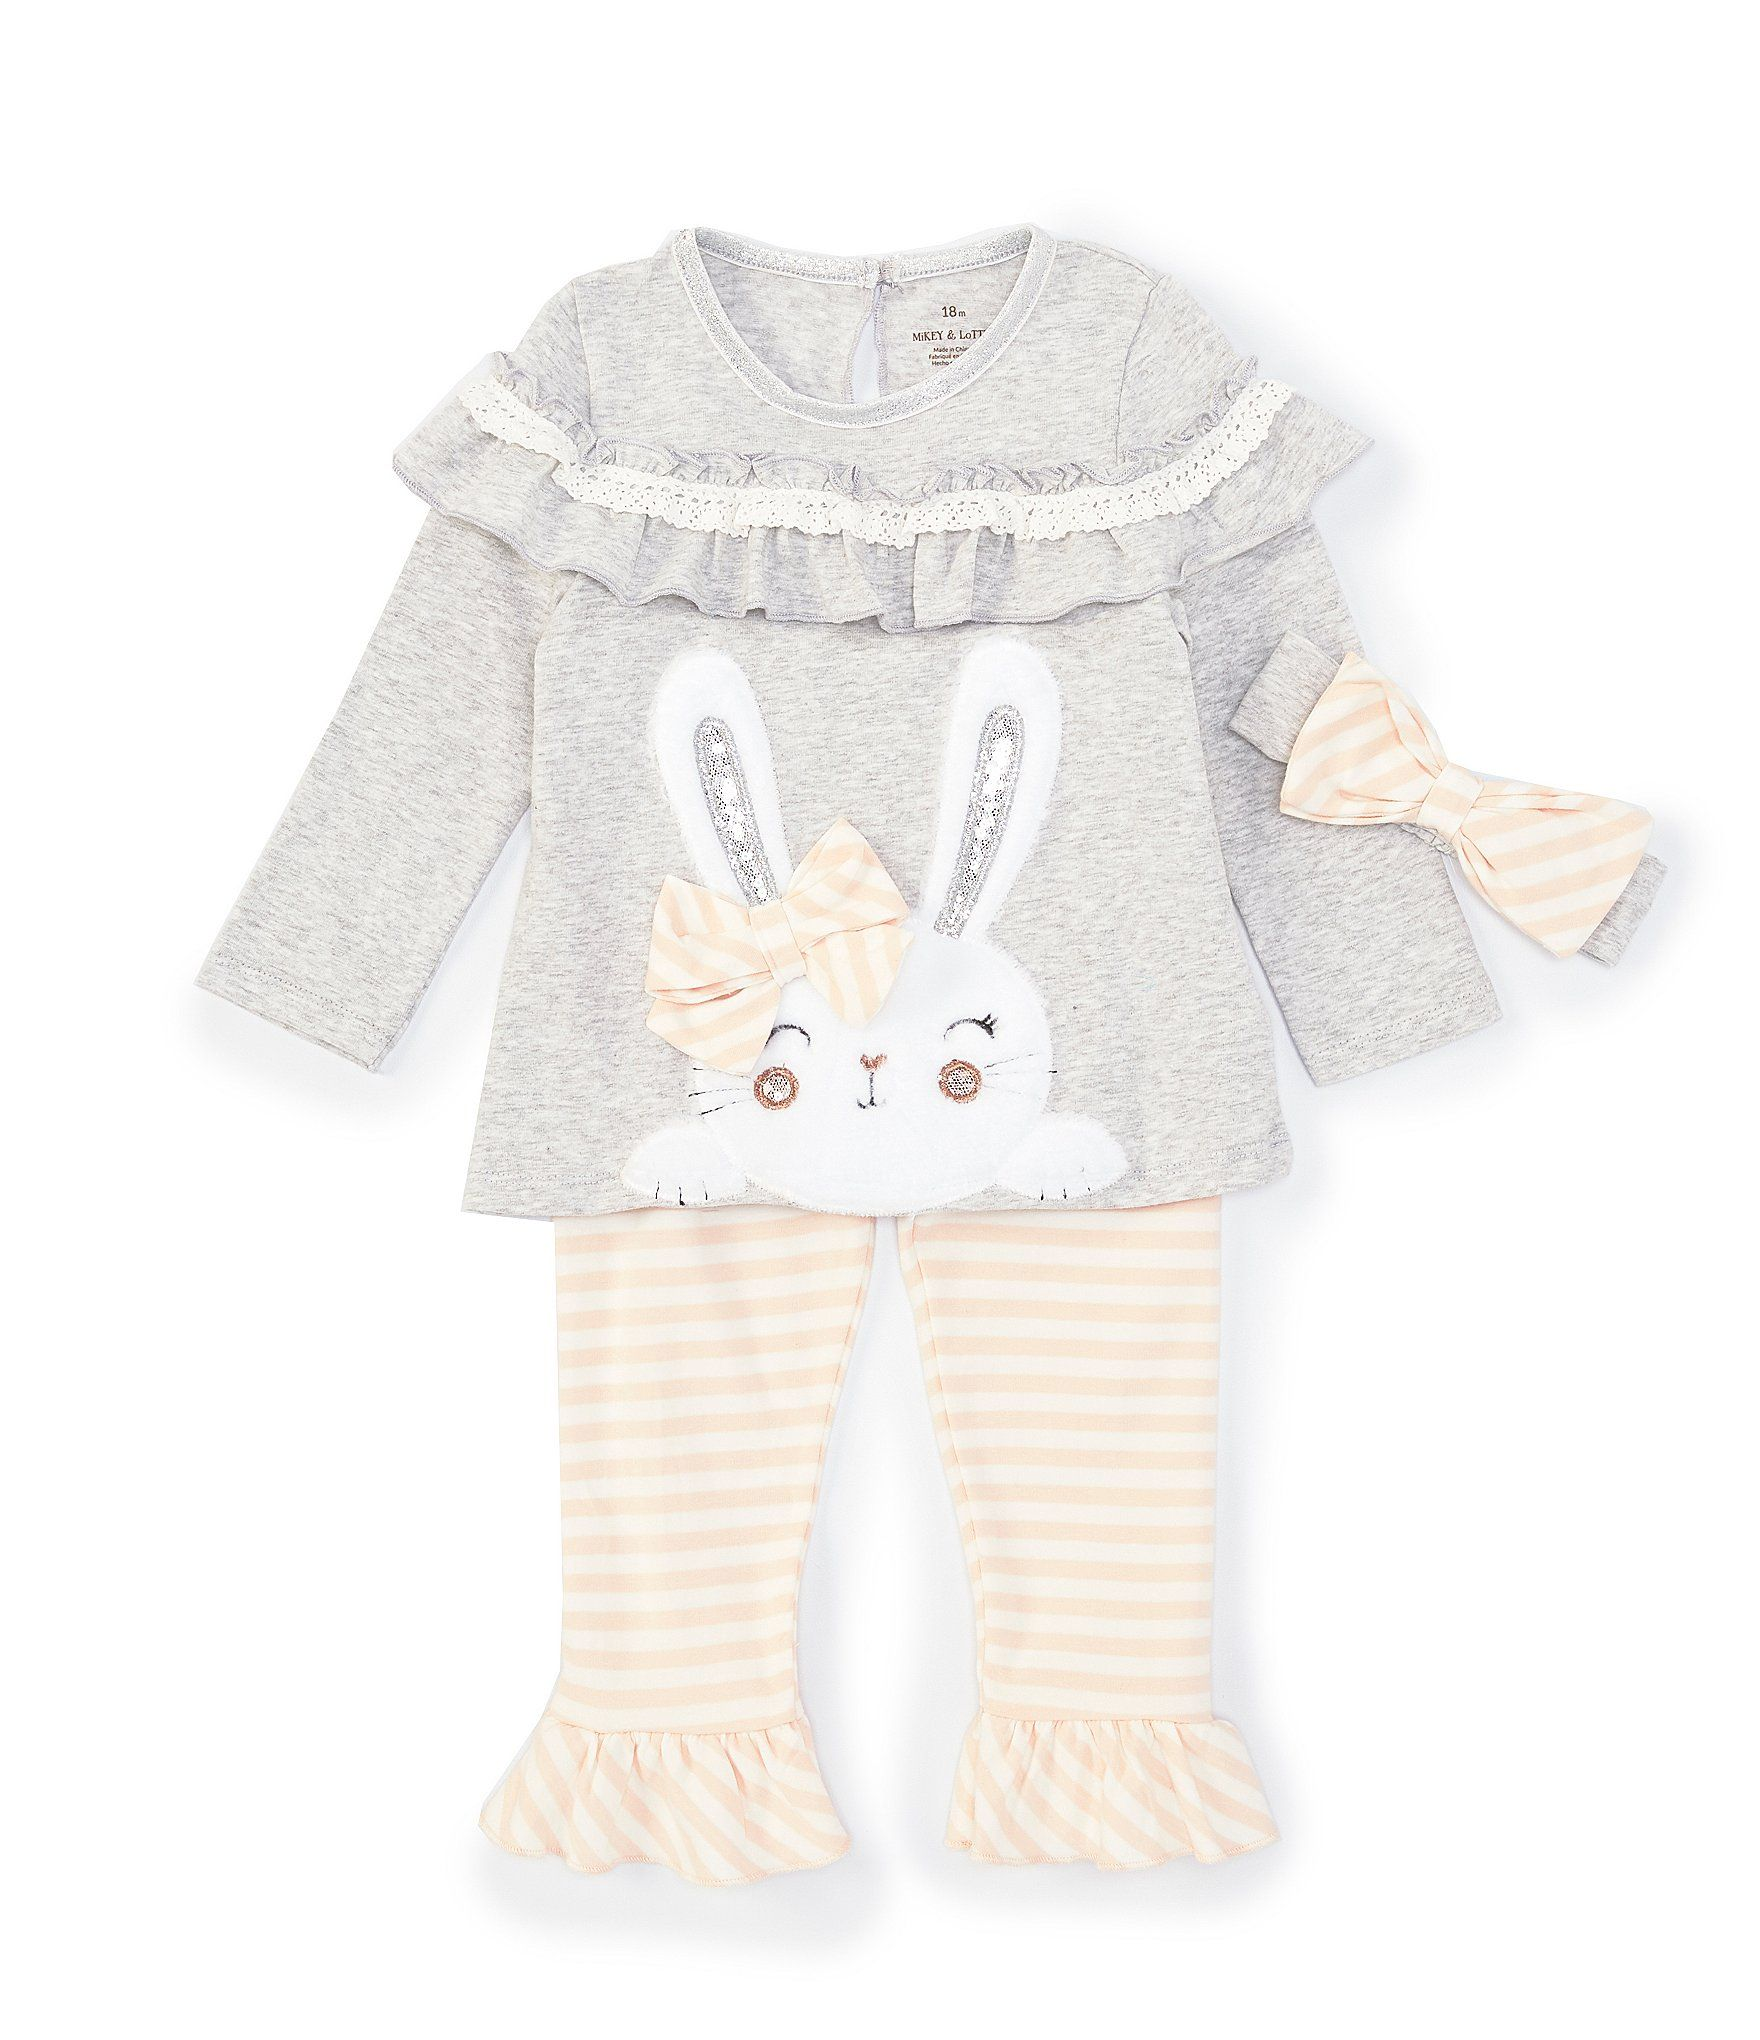 Baby Starters Baby Girls 12-24 Months Ruffle-Detail Bunny Top  Stripe Legging Set - Gray 24 Months #stripedleggings